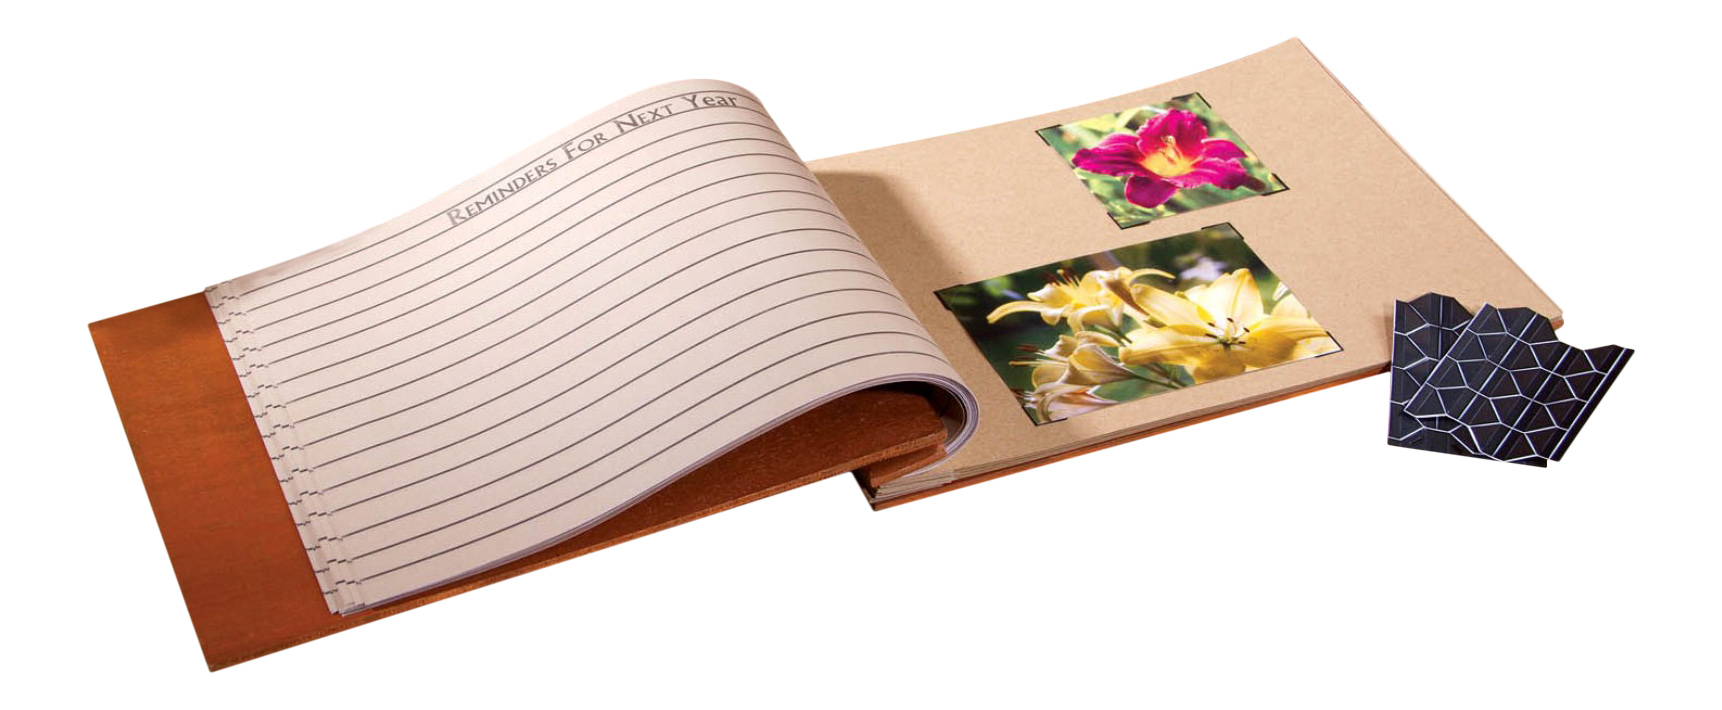 Olde Country Seed Company Advertising Garden Journal Photo